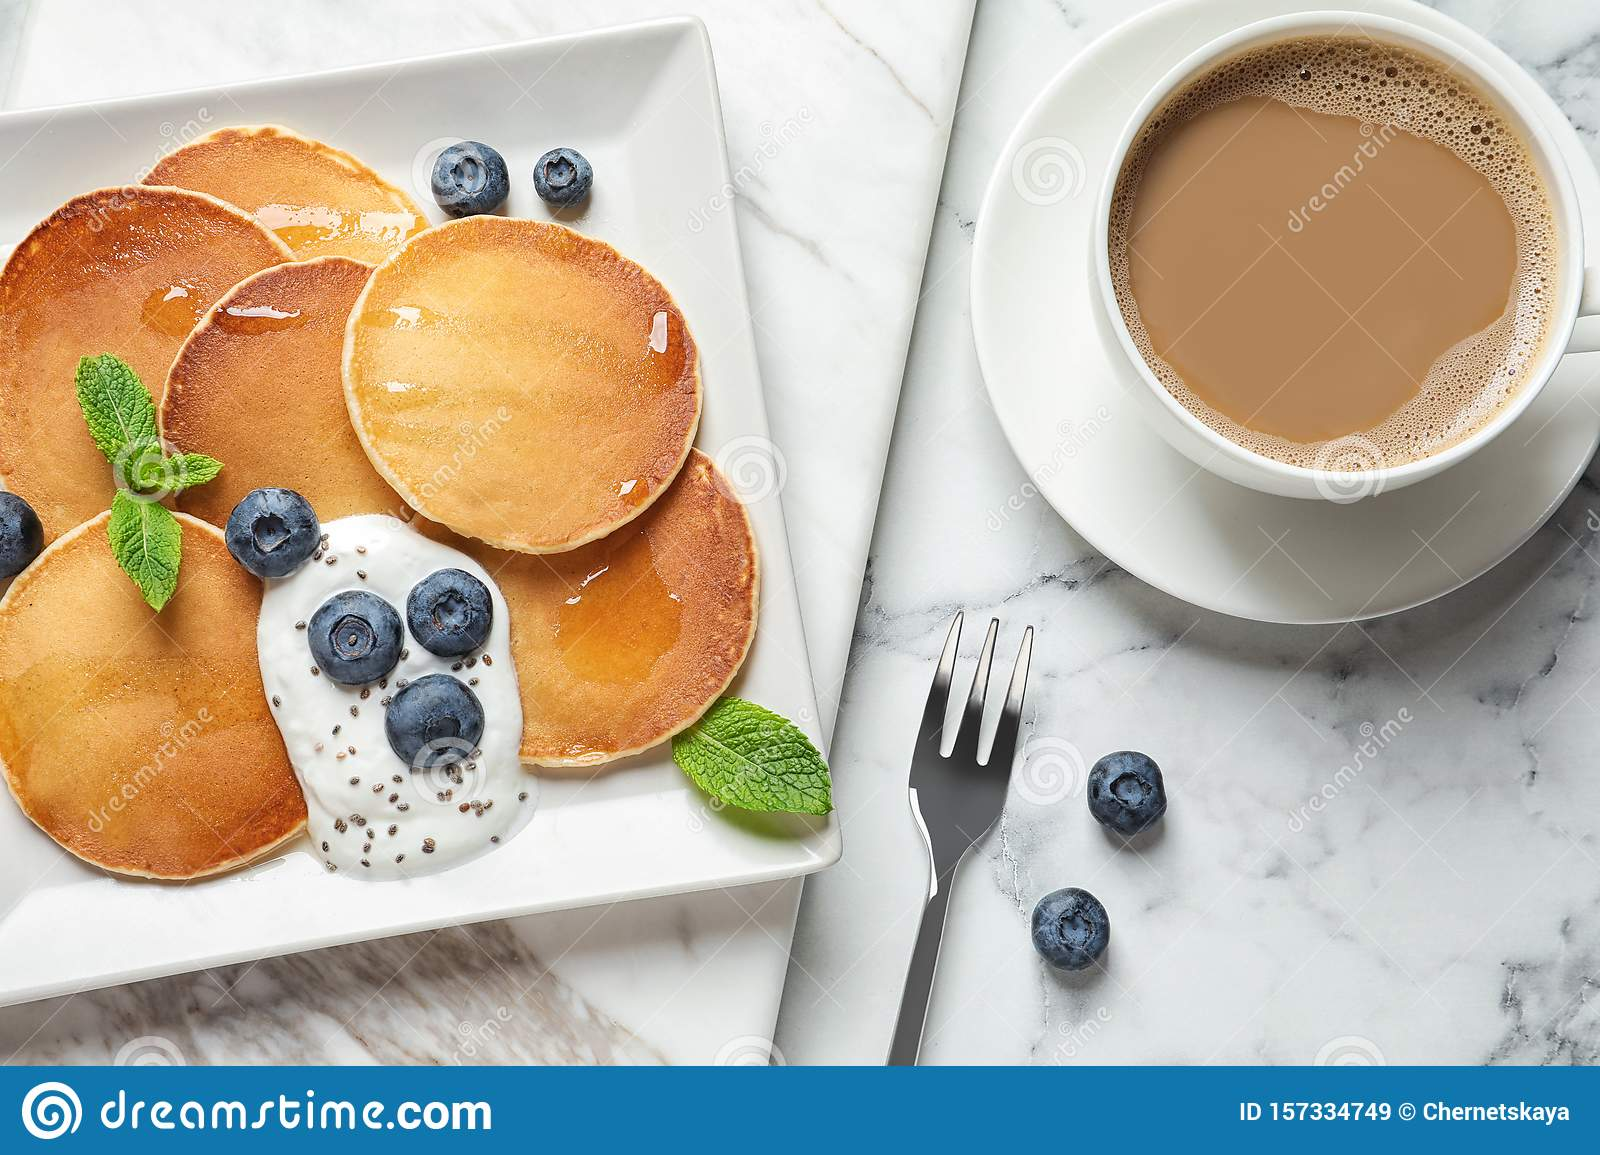 Plate of tasty pancakes with blueberries, sauce and mint on white marble table